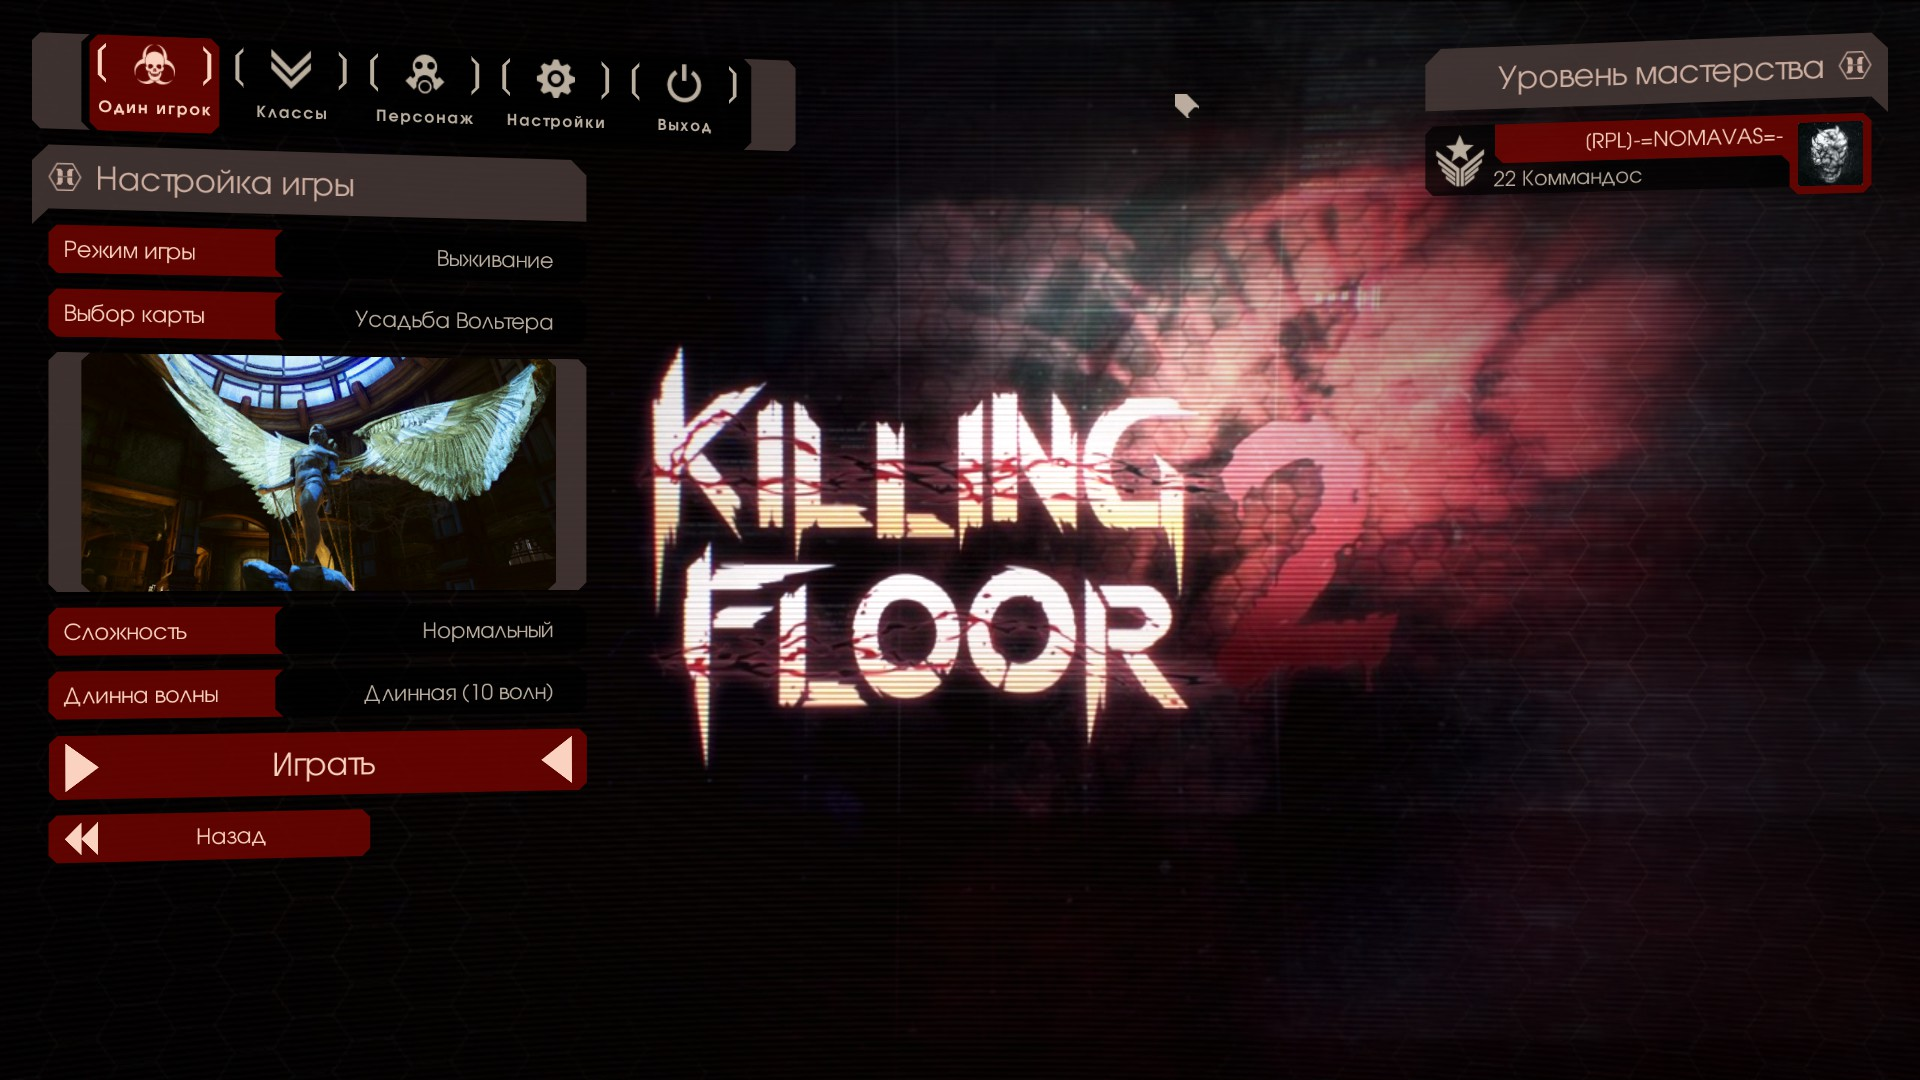 Killing floor 2 rus (steam gift) buy online | best downloadable pc.